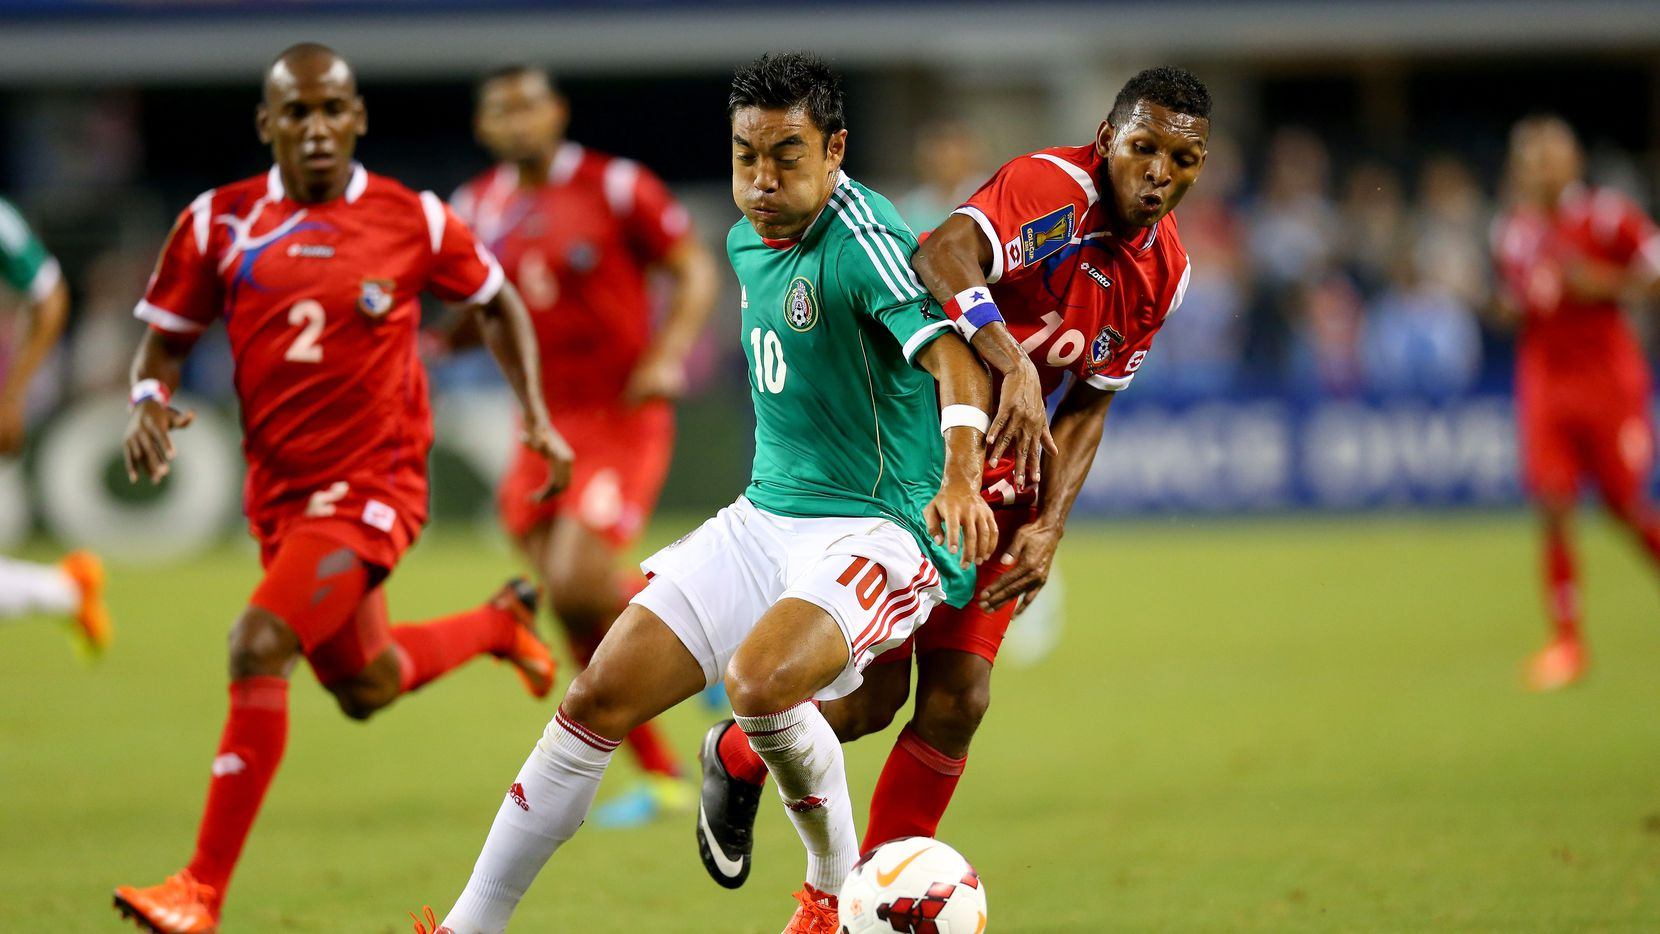 ARLINGTON, TX - JULY 24:  Marco Fabian #10 of Mexico dribbles the ball against Alberto Quintero #19 of Panama during the CONCACAF Gold Cup semifinal match at Cowboys Stadium on July 24, 2013 in Arlington, Texas.